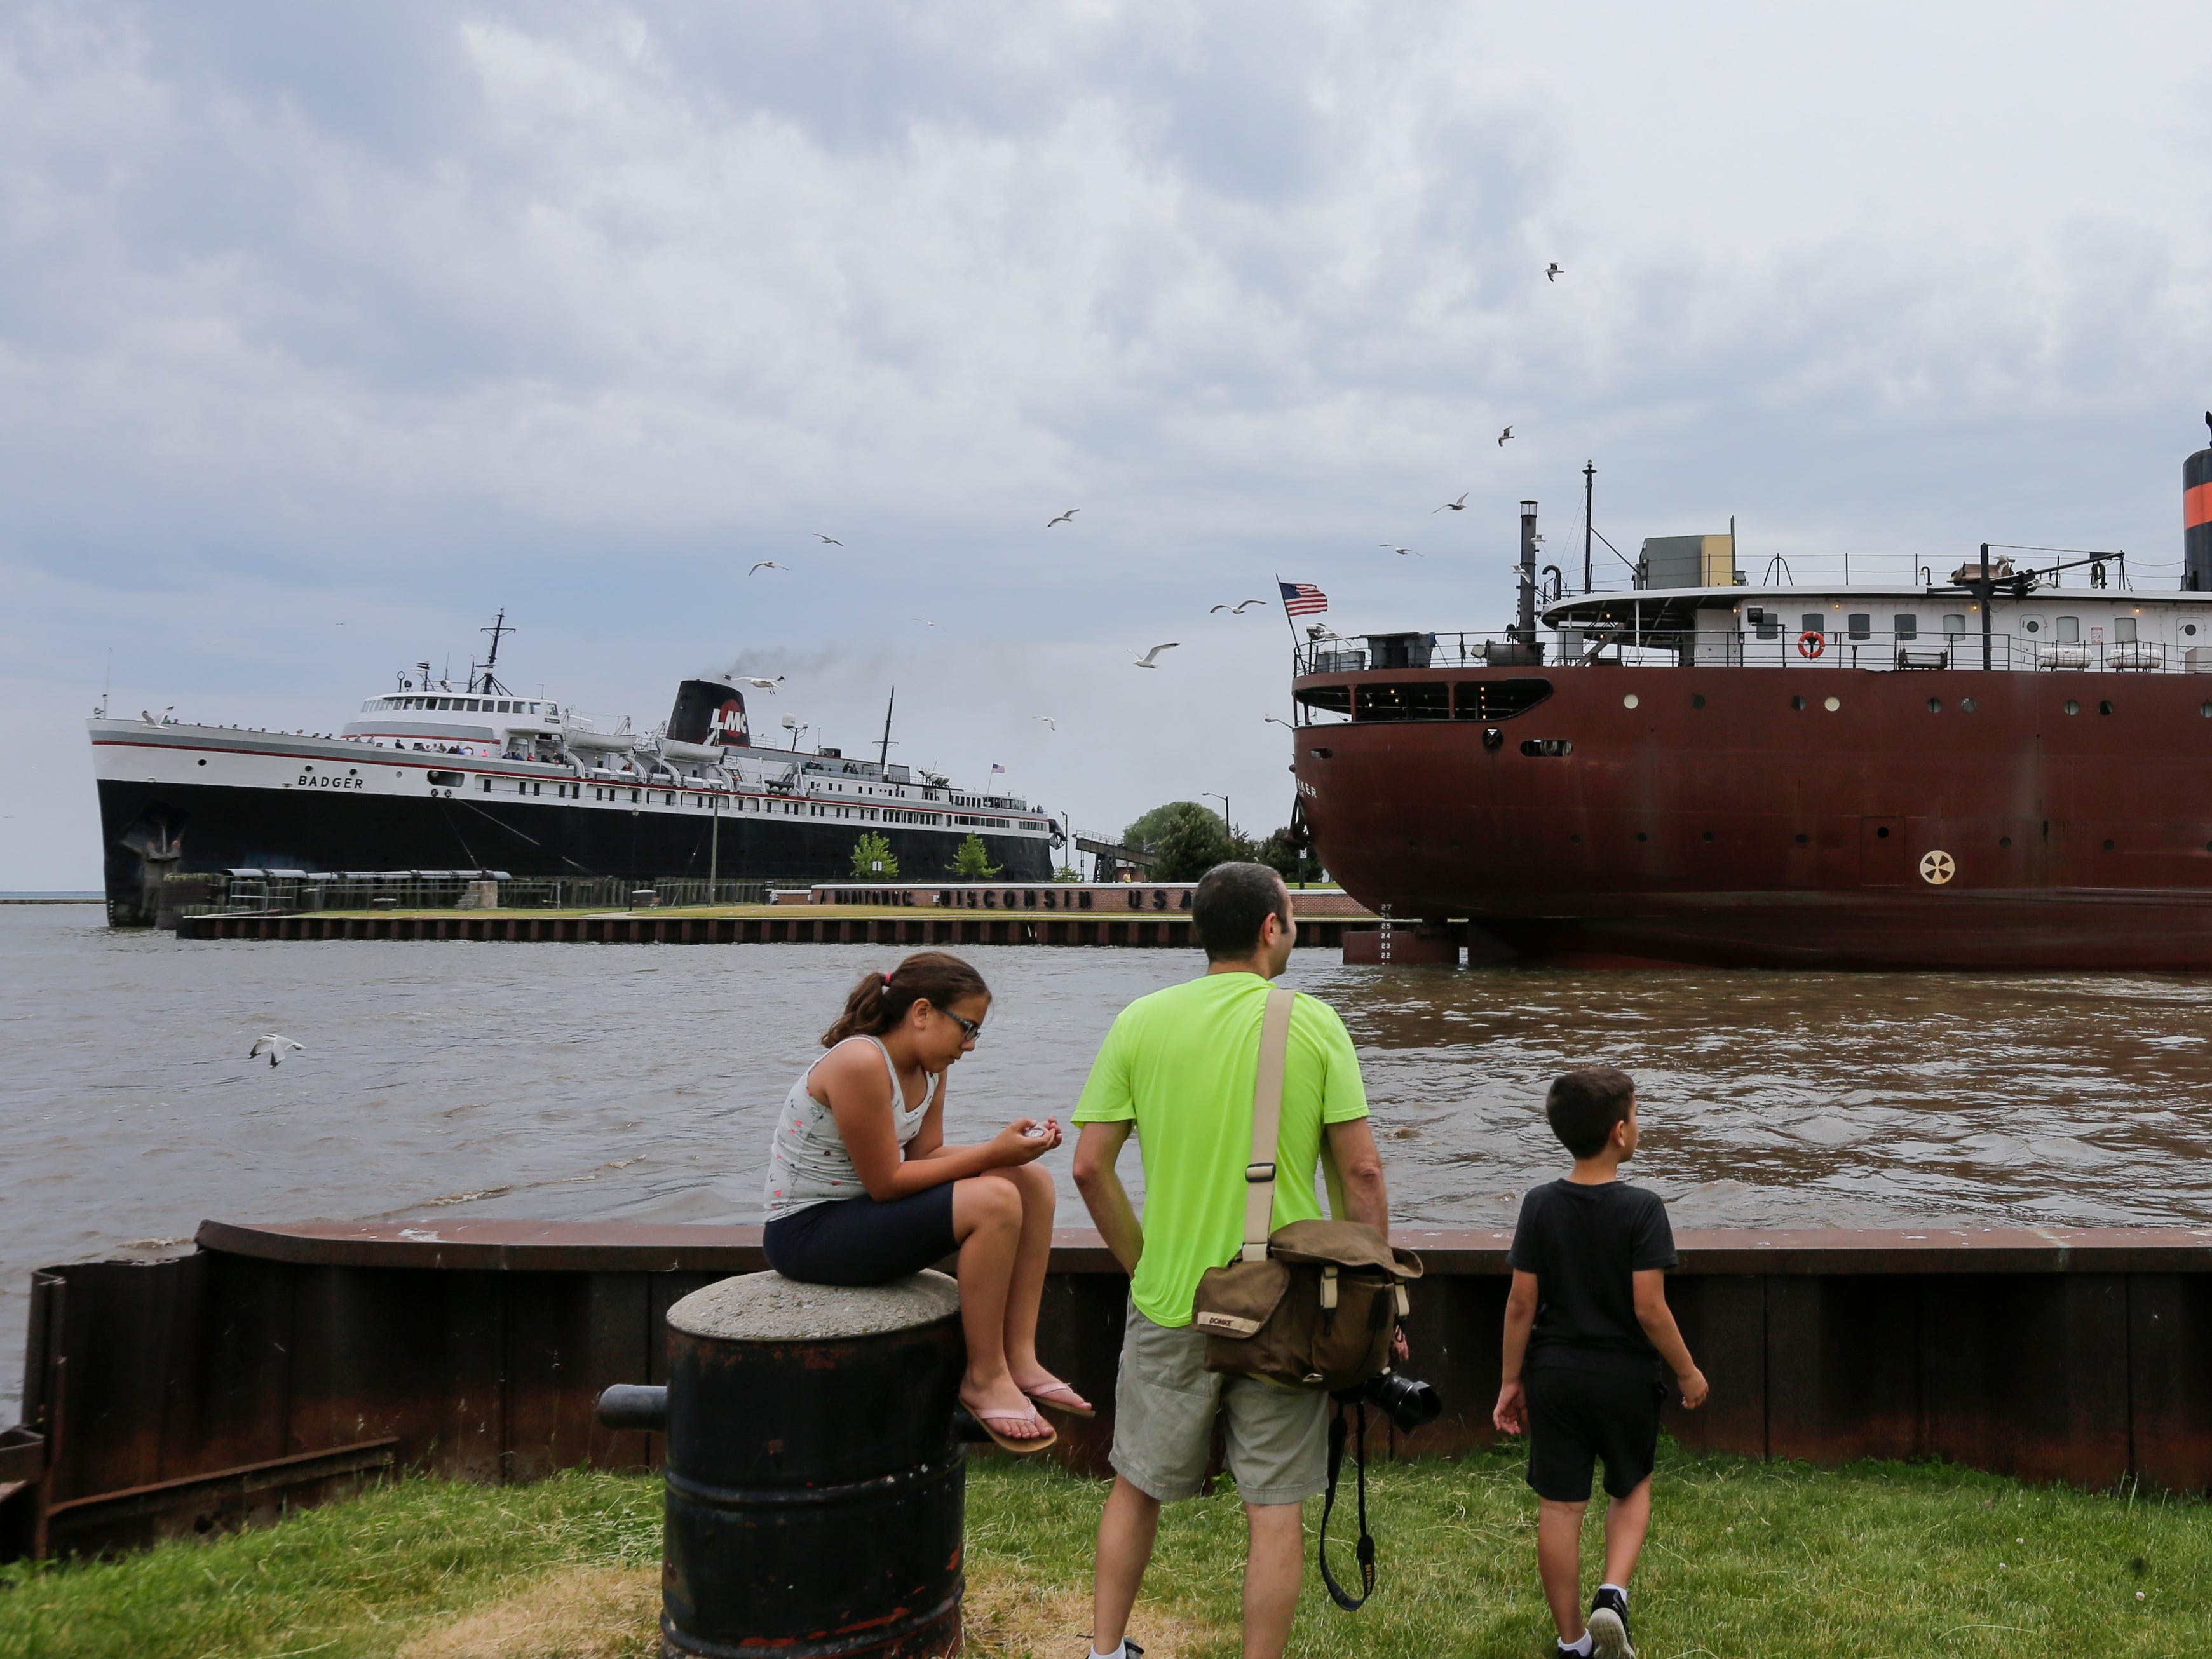 People watch as the lake vessel Kaye E. Barker delivers a load of coal for Manitowoc Public Utilities Saturday, Jun 16, 2018, in Manitowoc, Wis. The Barker, built in 1952 as the Edward B. Greene, is more than 700 feet long and can carry 25,900 gross tons of cargo. Josh Clark/USA TODAY NETWORK-Wisconsin